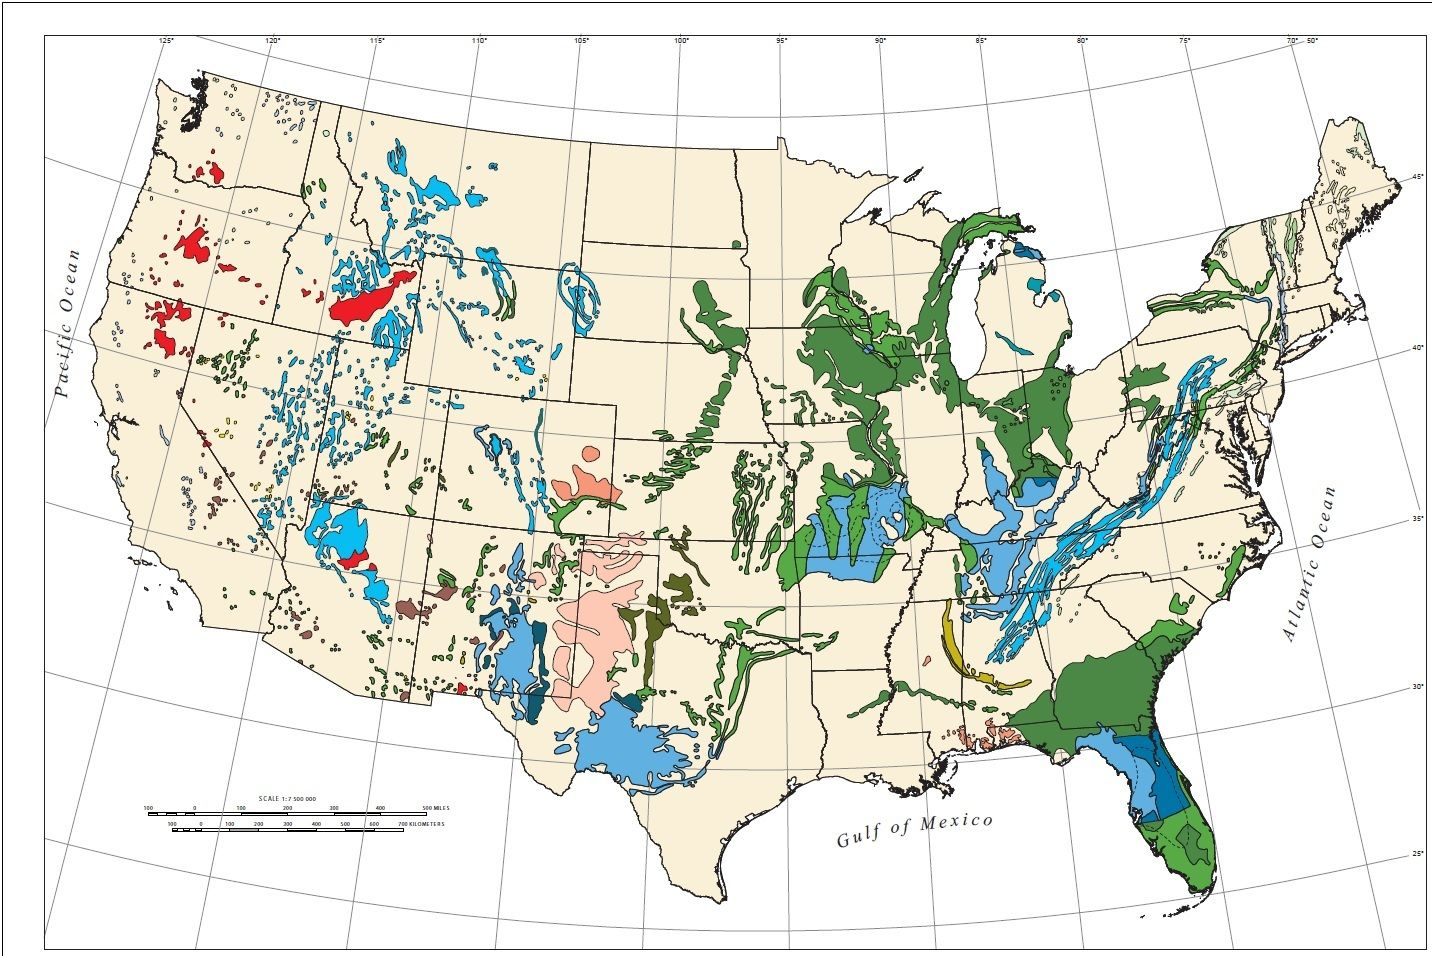 Us Sinkhole Map - Map Of Sinkholes In The Us. These Maps Show That - Florida Sinkhole Map By County